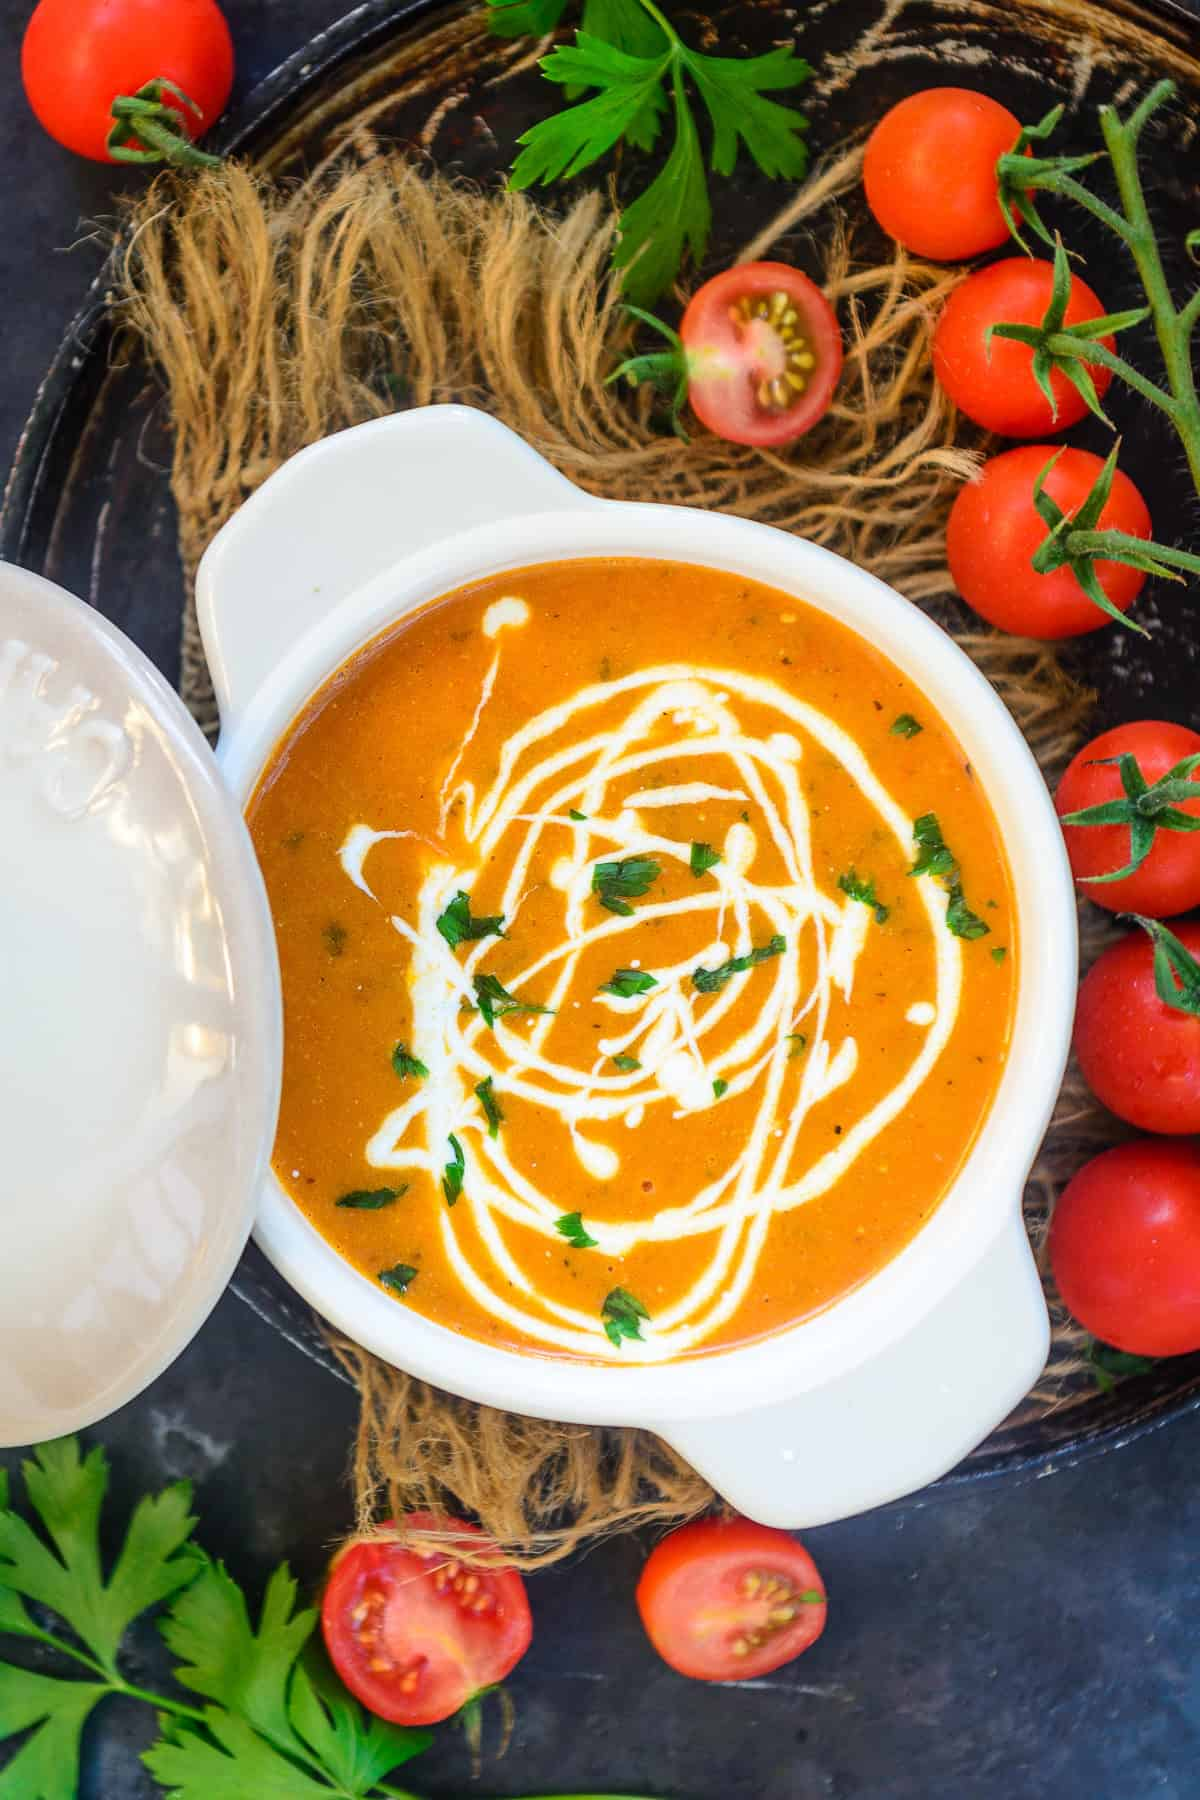 Tomato Bisque served in a bowl.